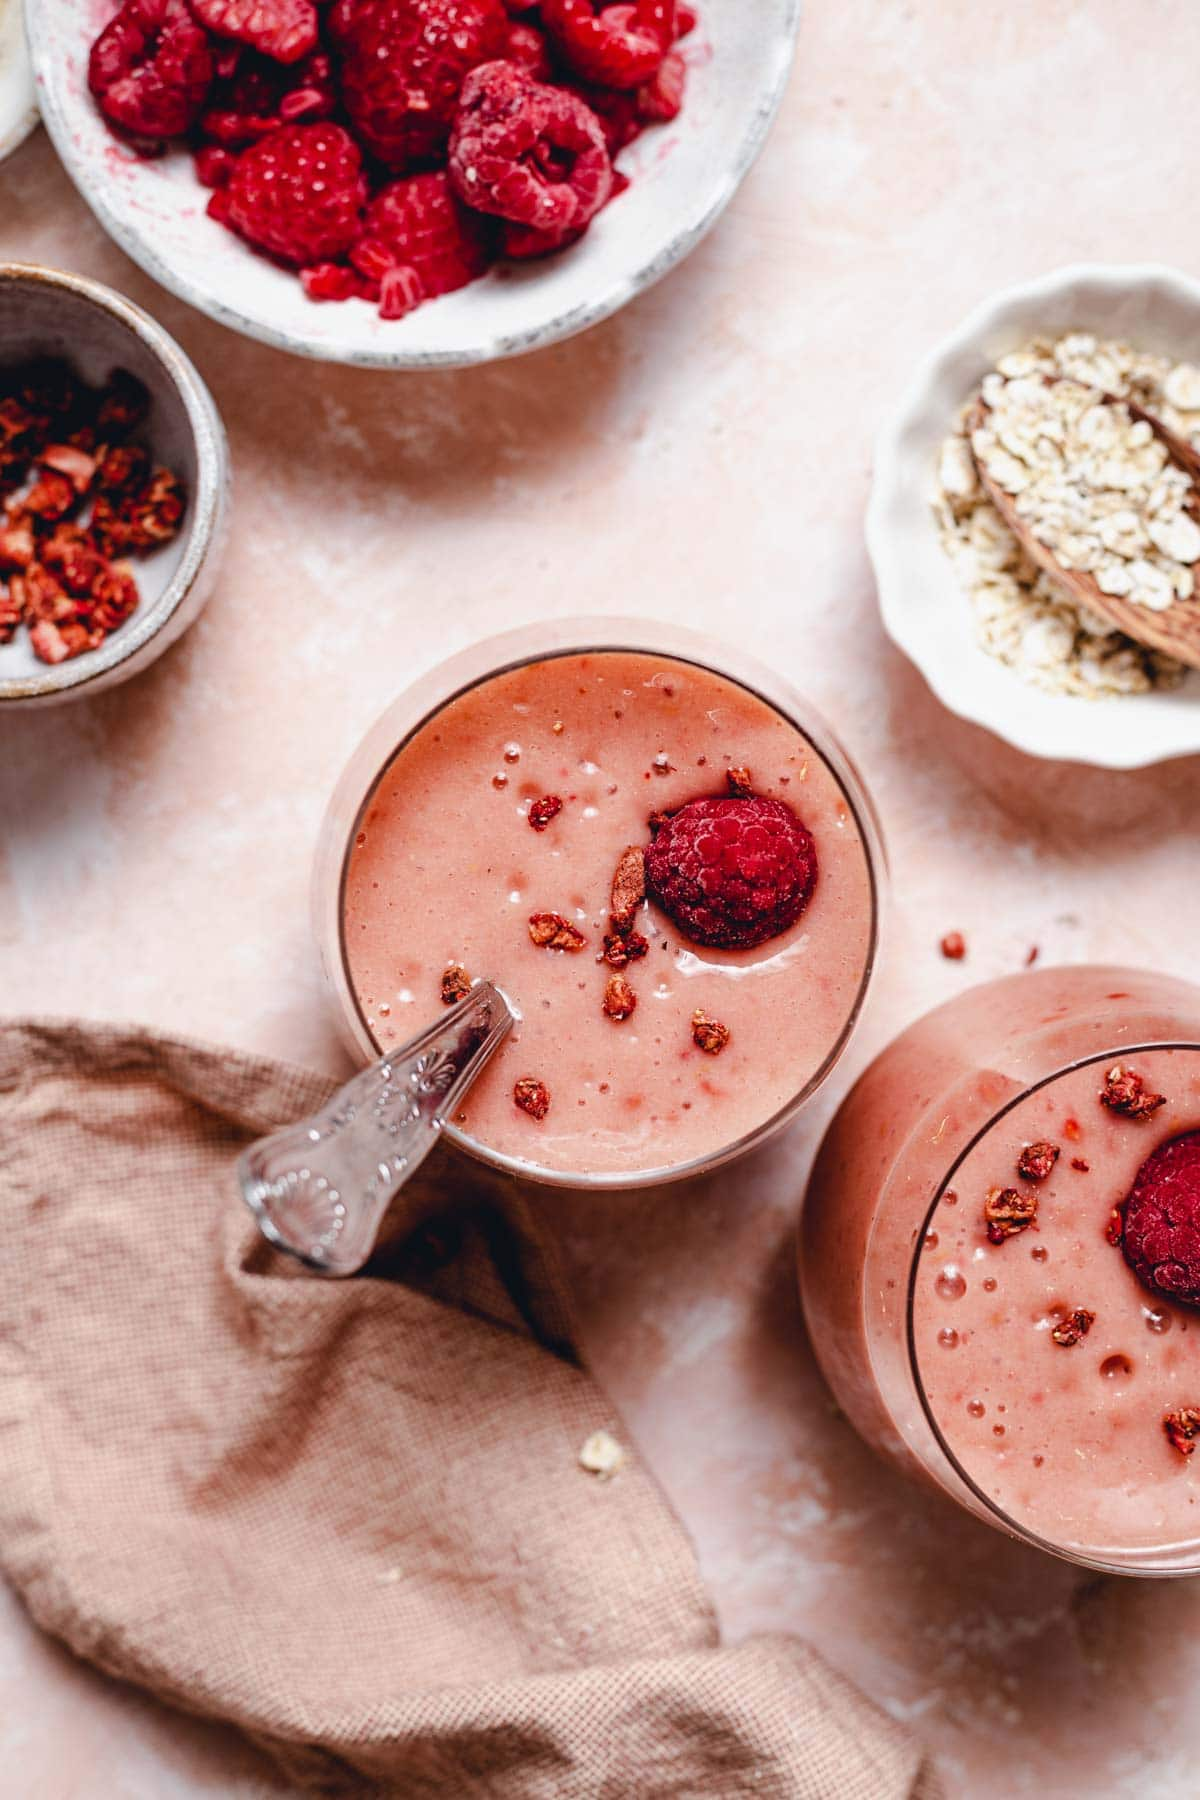 Two glasses of pink coloured smoothie on a flat background with raspberries, oats and a napkin laid next to them.